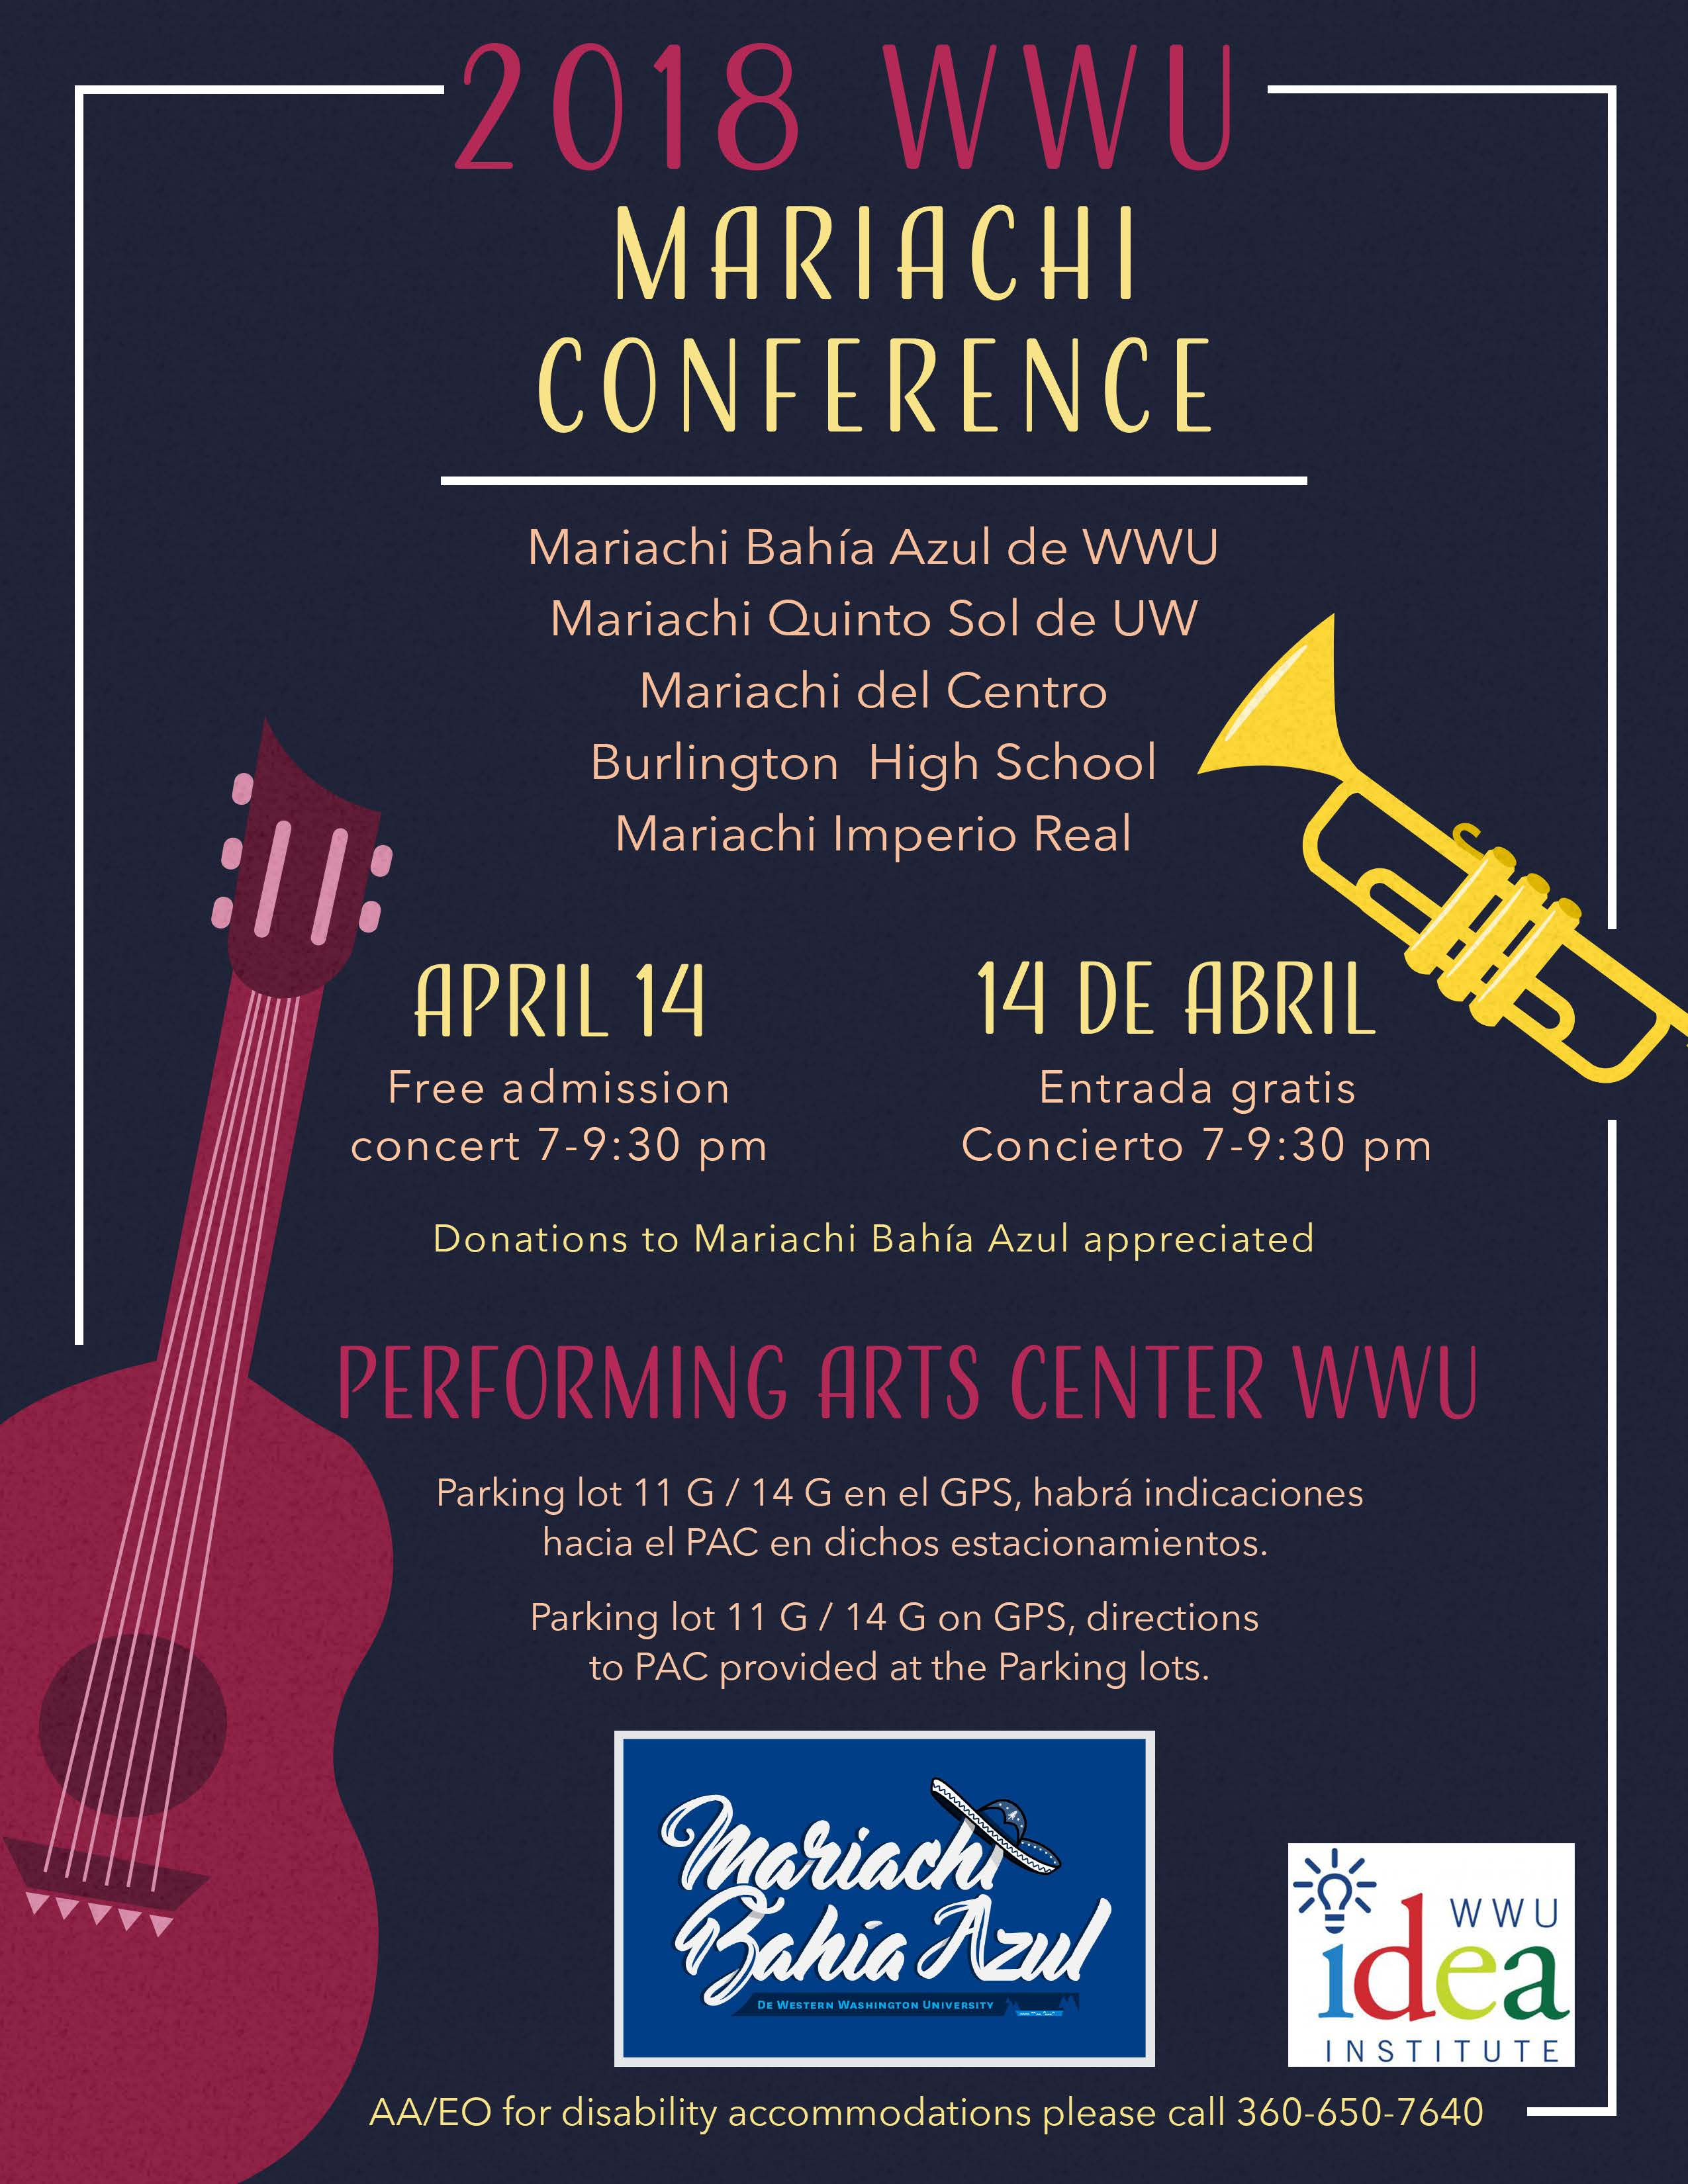 mariachi conference poster